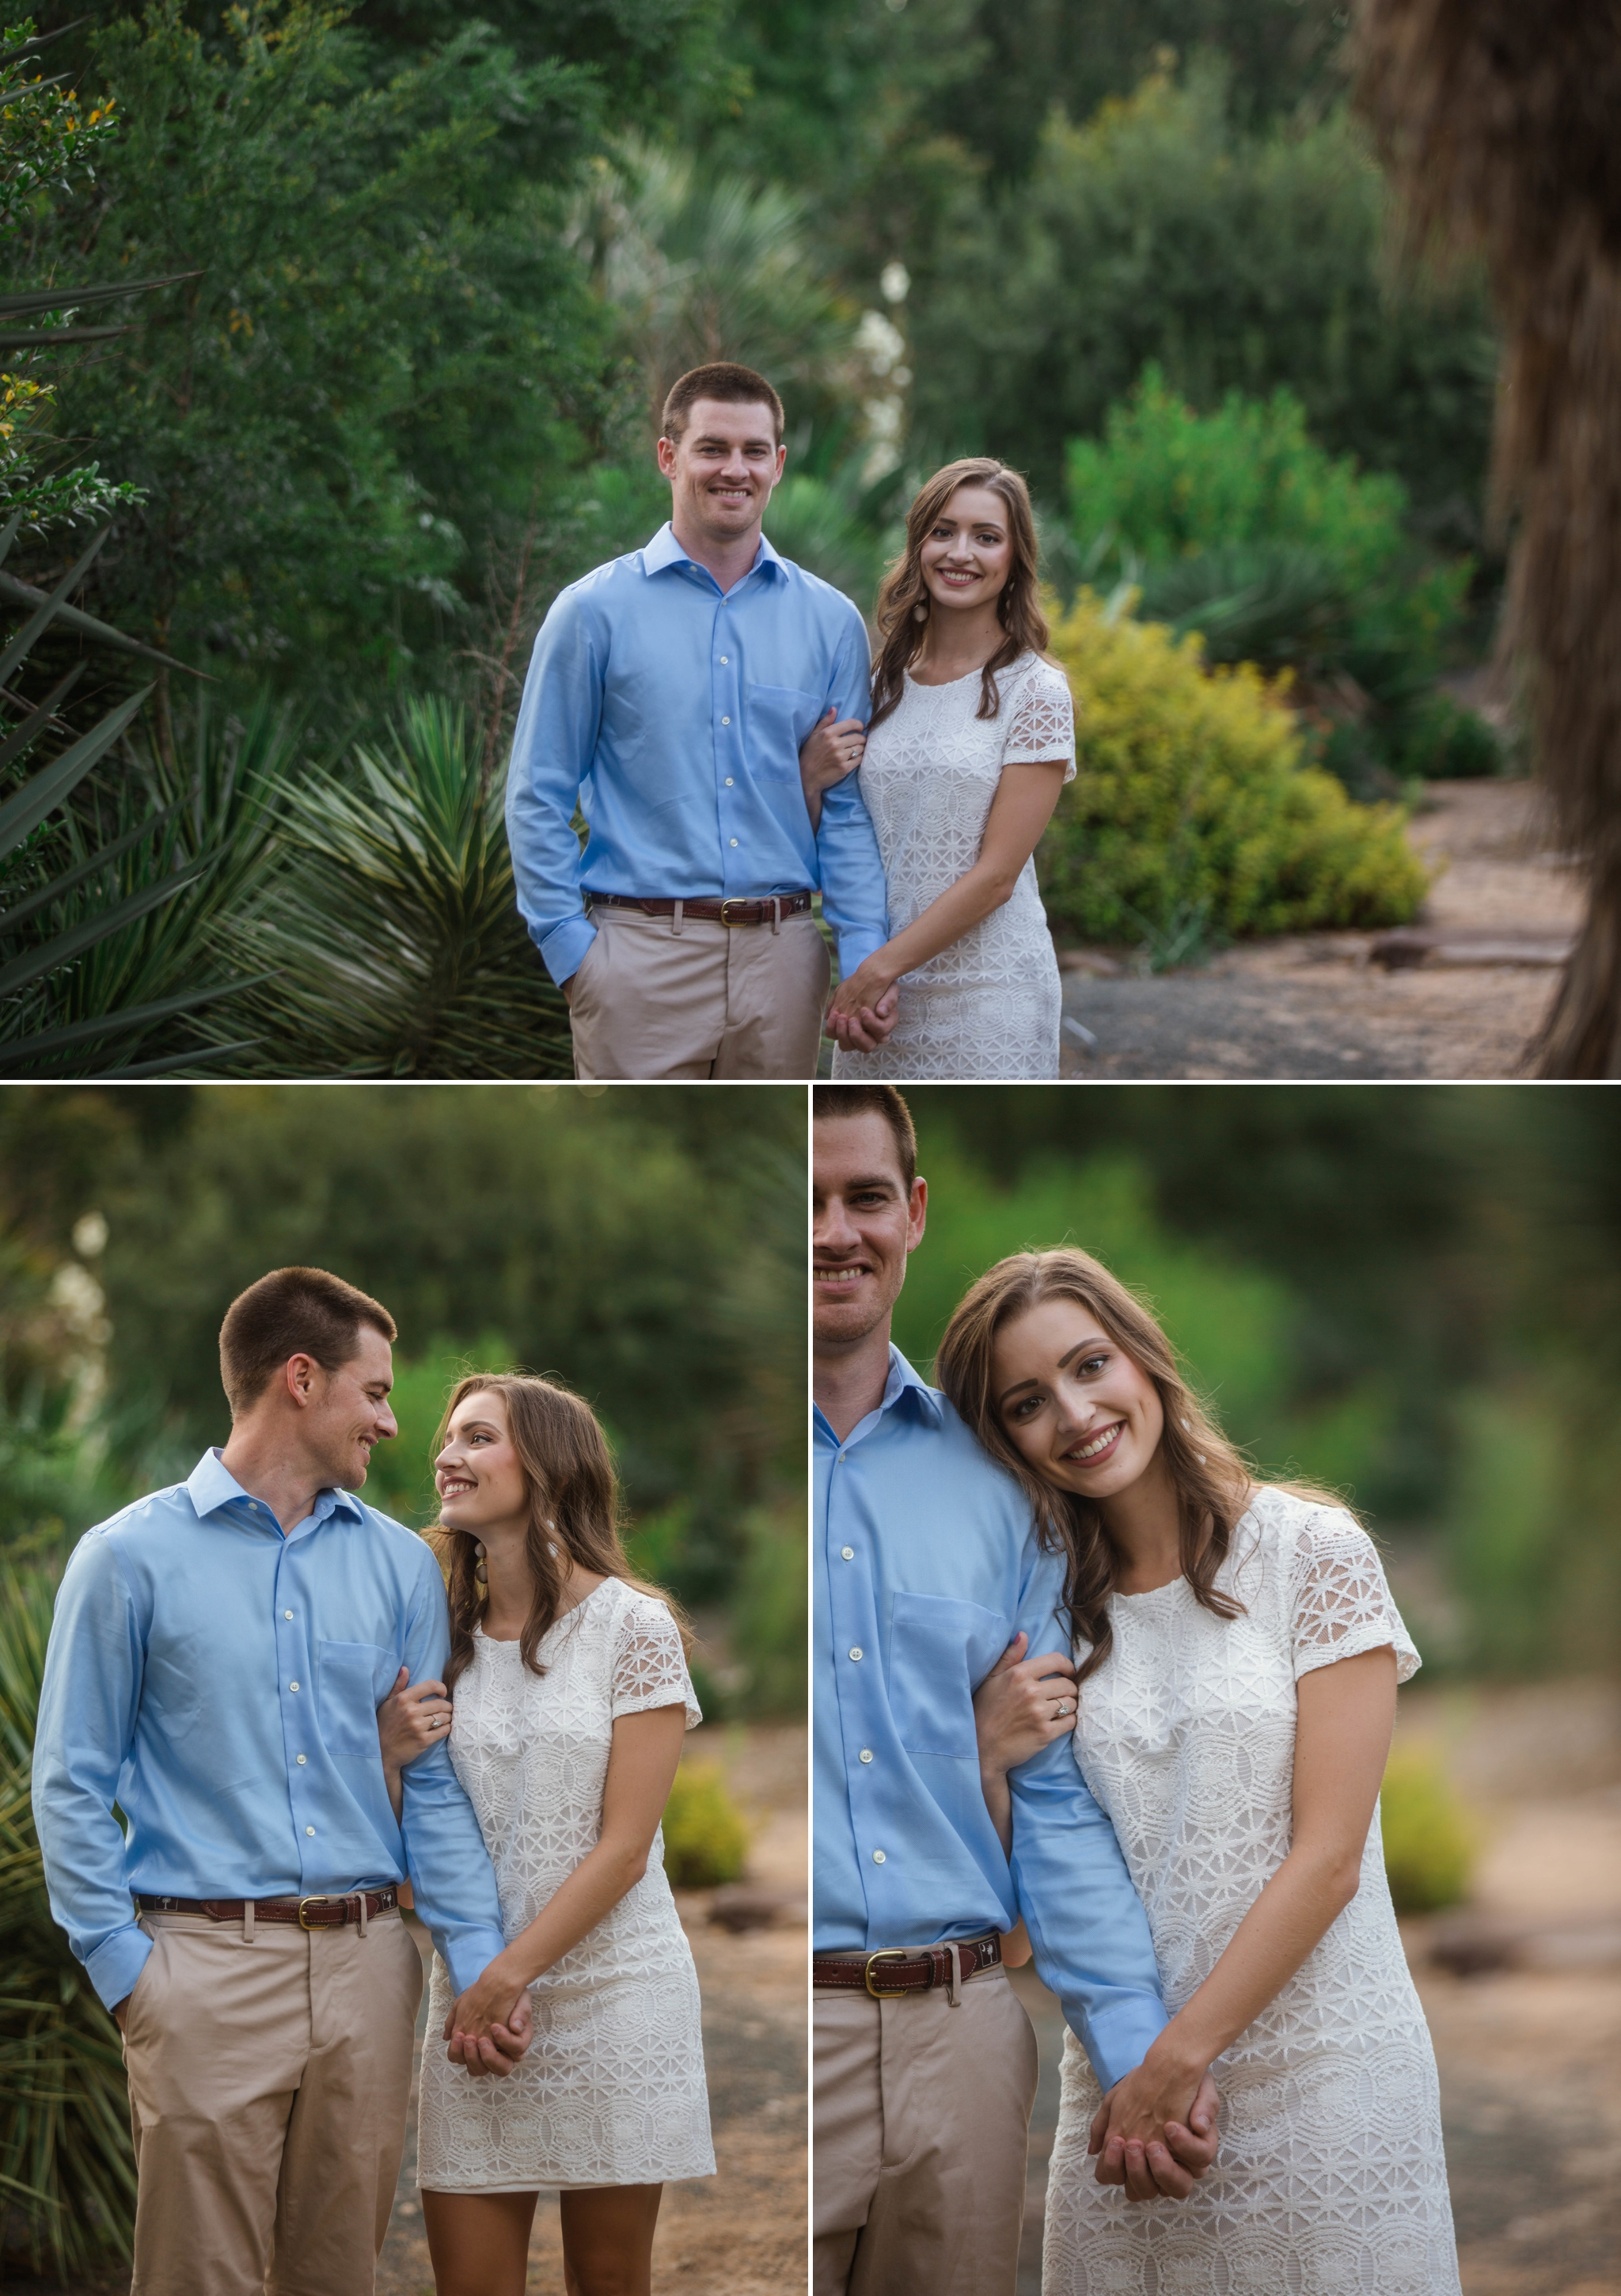 Paige + Tyler - Engagement Photography Session at the JC Raulston Arboretum - Raleigh Wedding Photographer 4.jpg